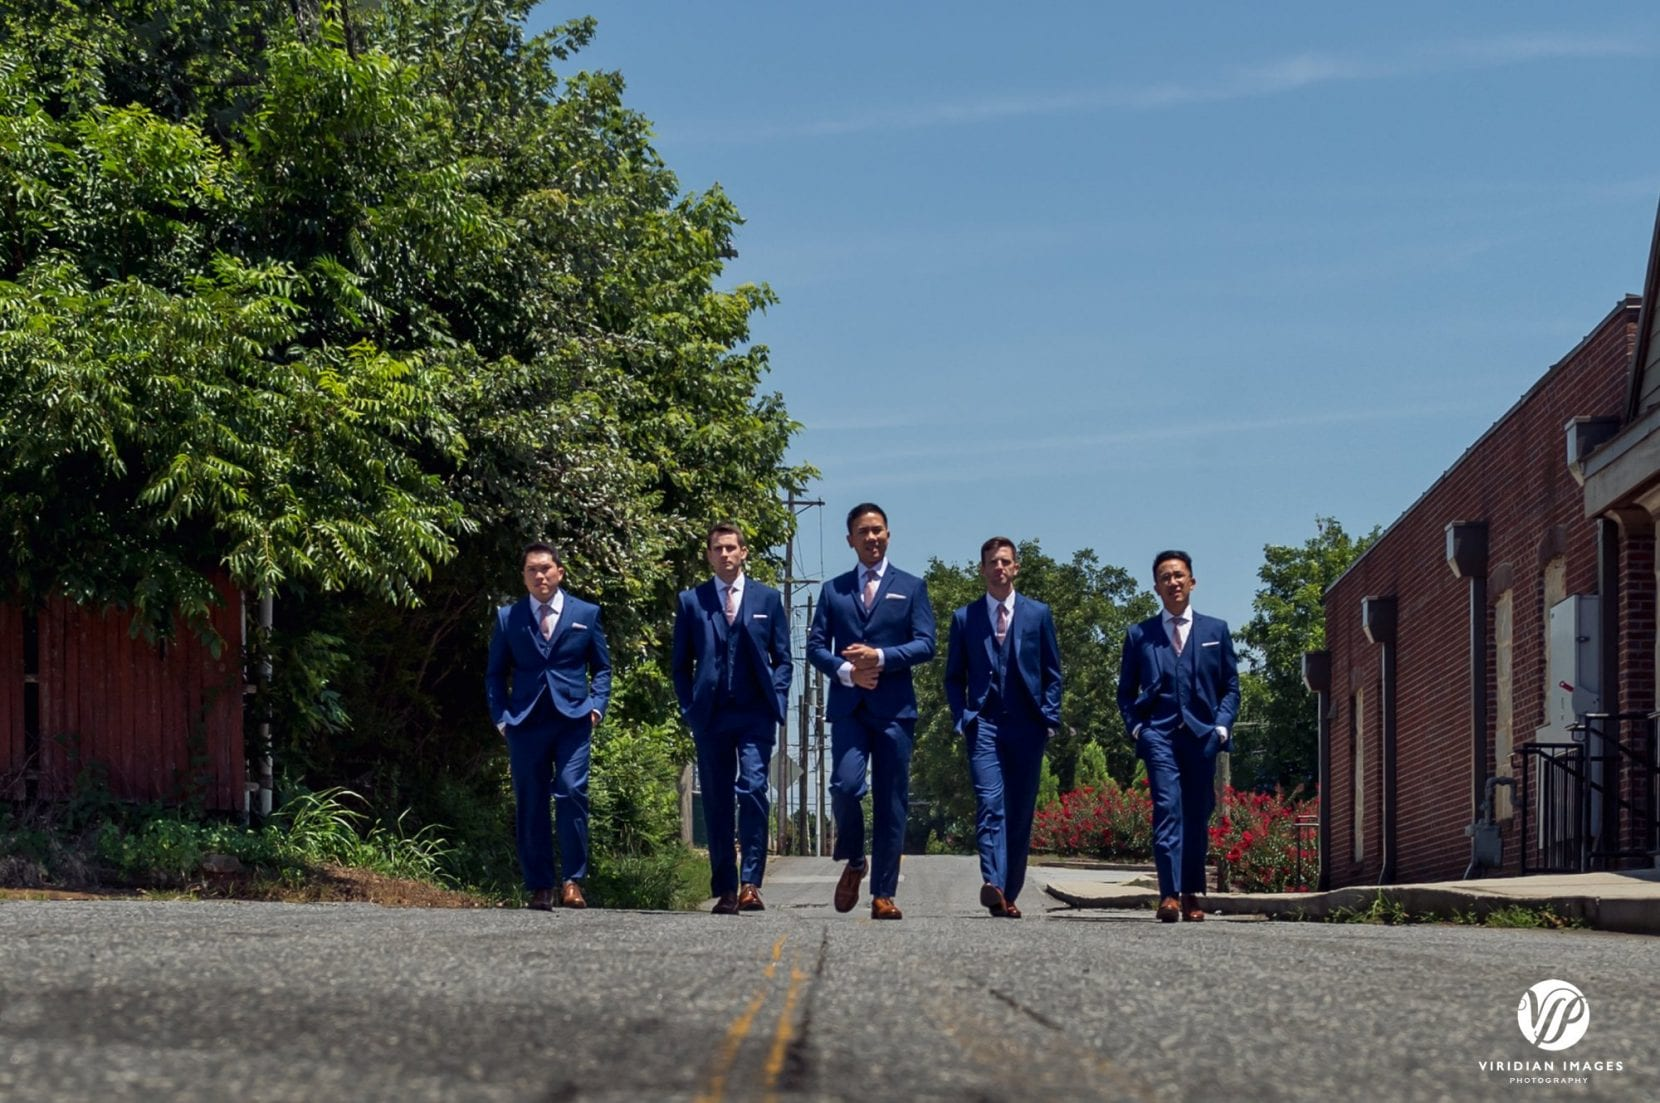 groom, groomsmen walking on street